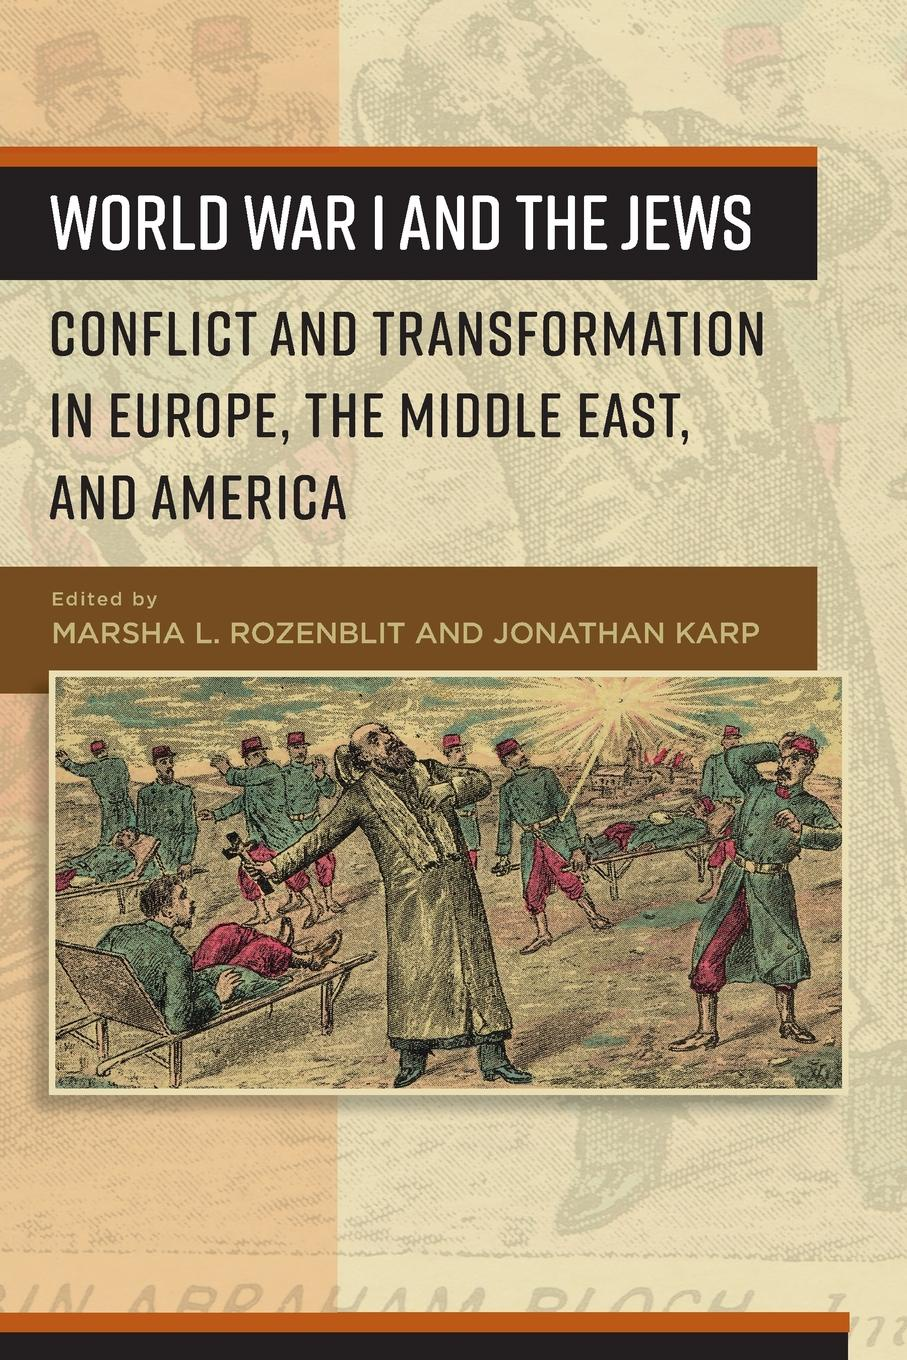 World War I and the Jews. Conflict and Transformation in Europe, the Middle East, and America john horne a companion to world war i